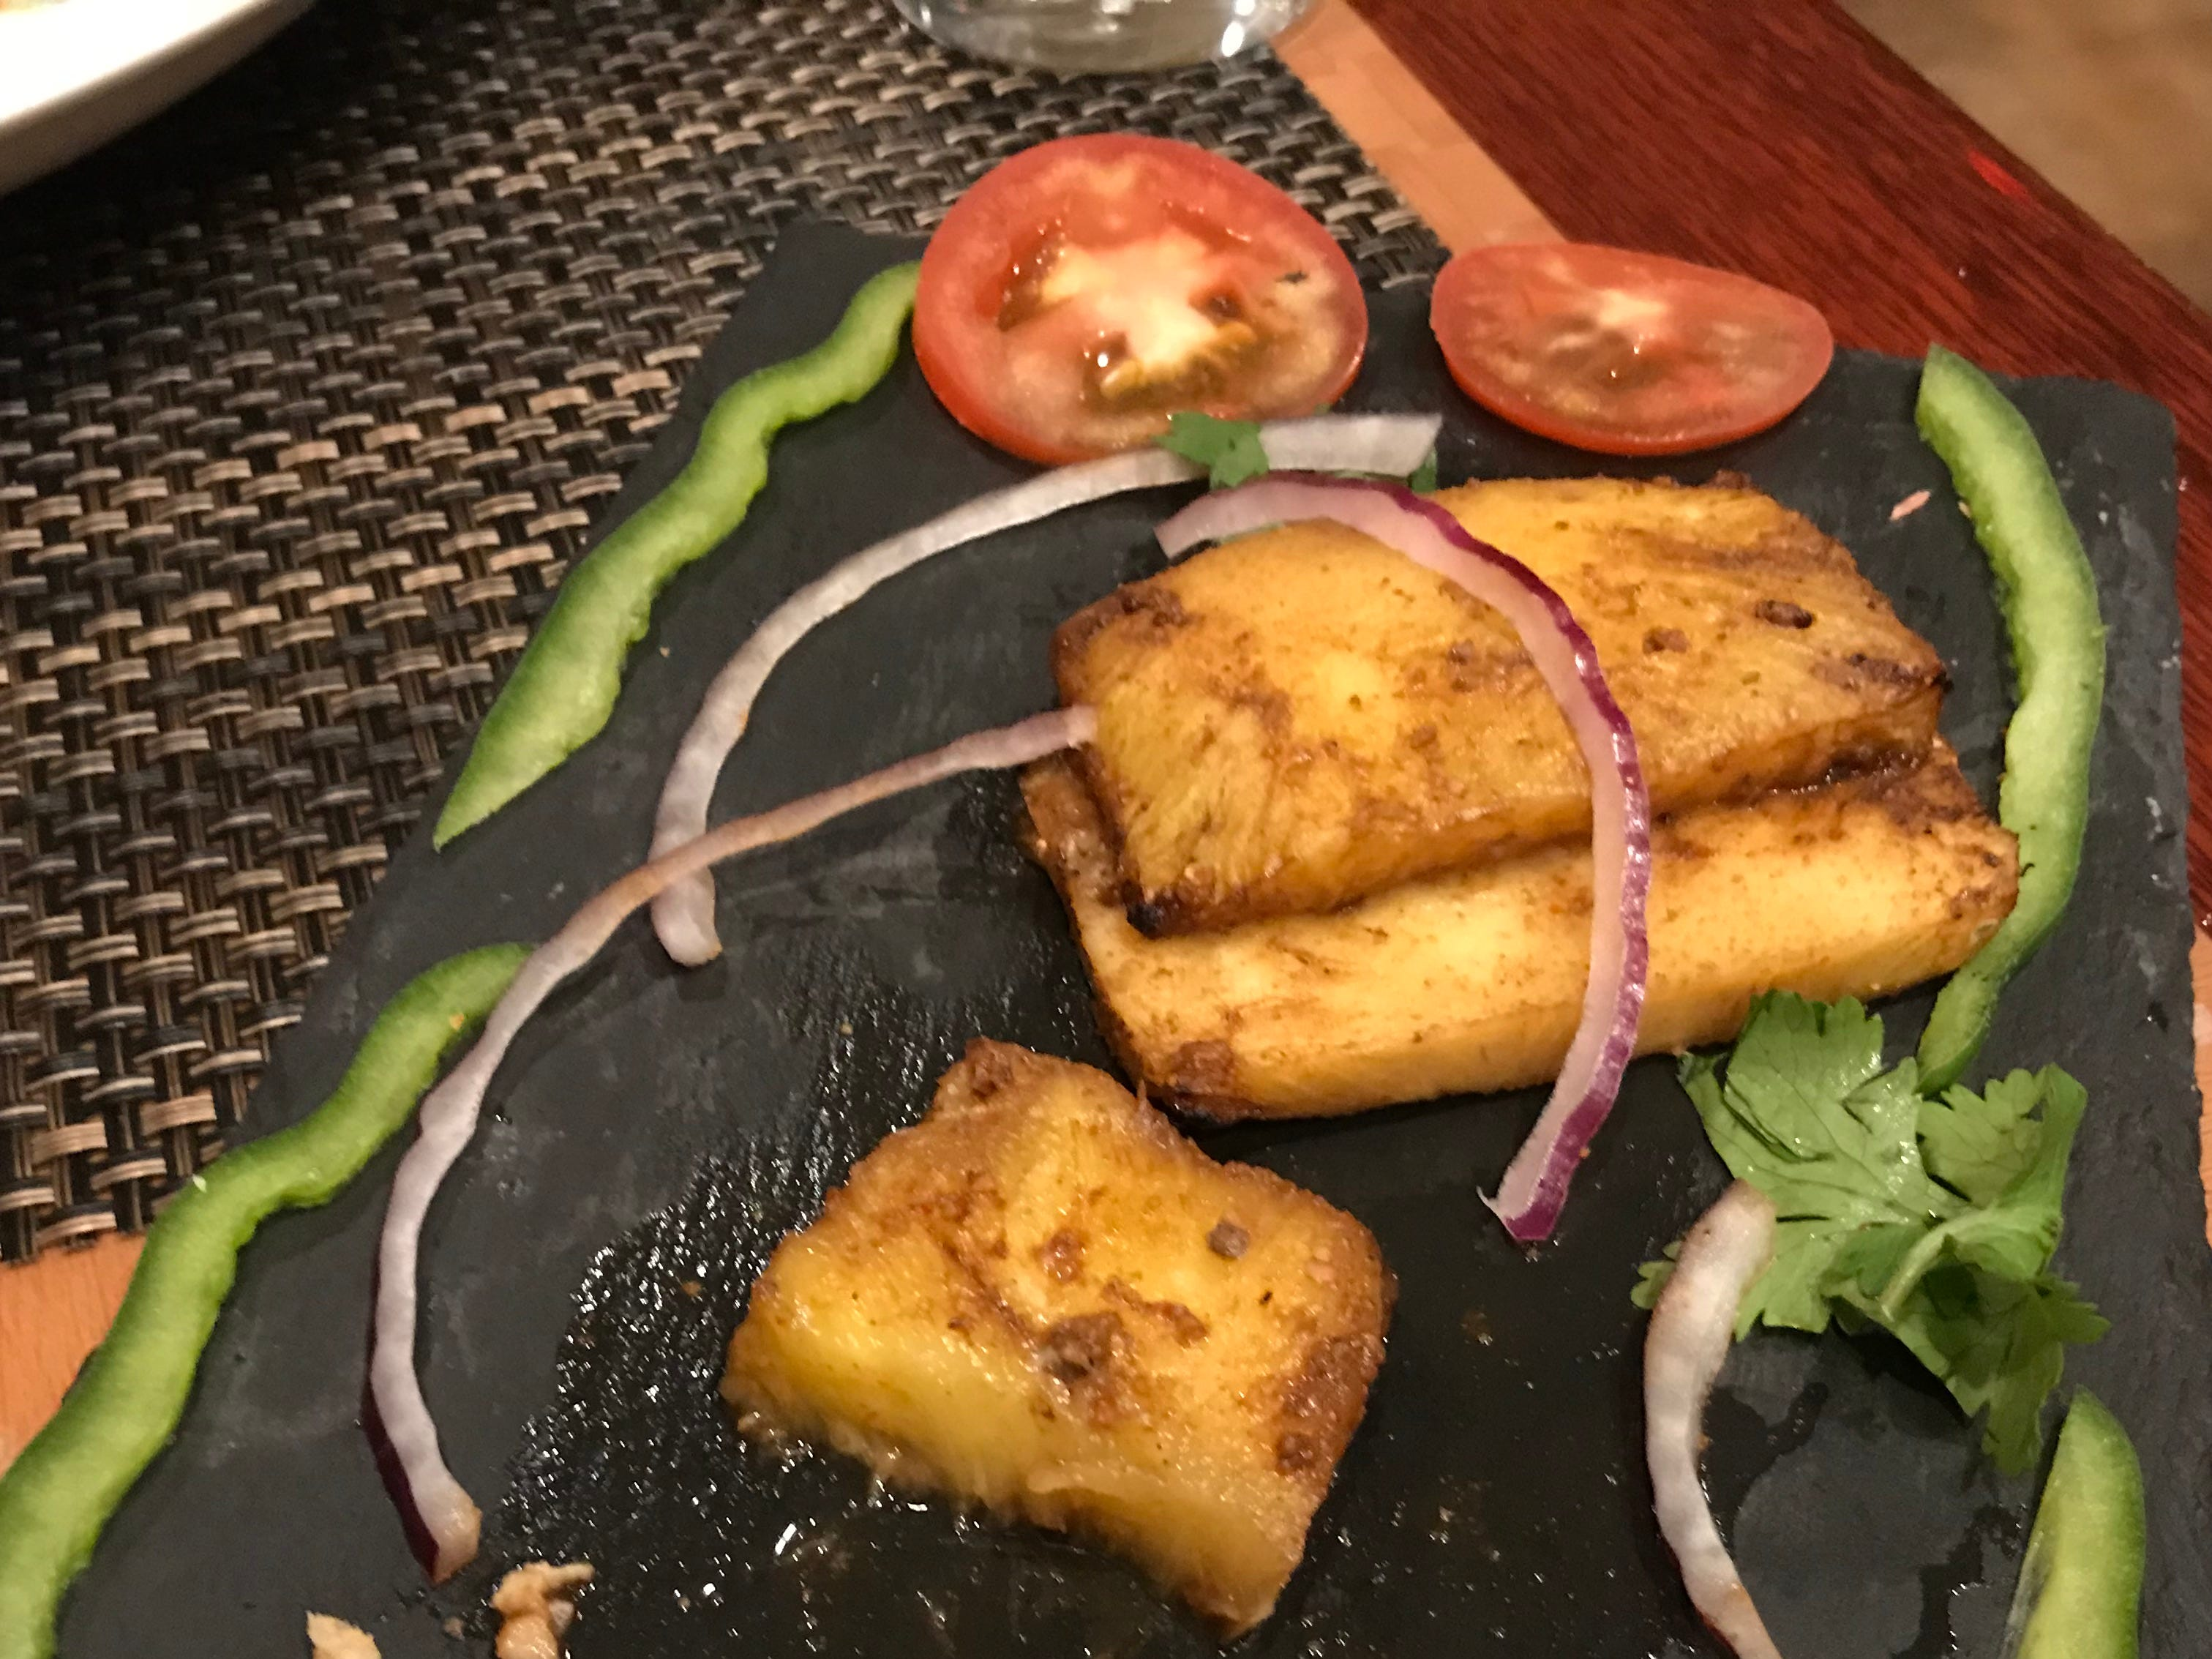 Pineapple is among the kababs available at Metuchen's new Kabab Factory.